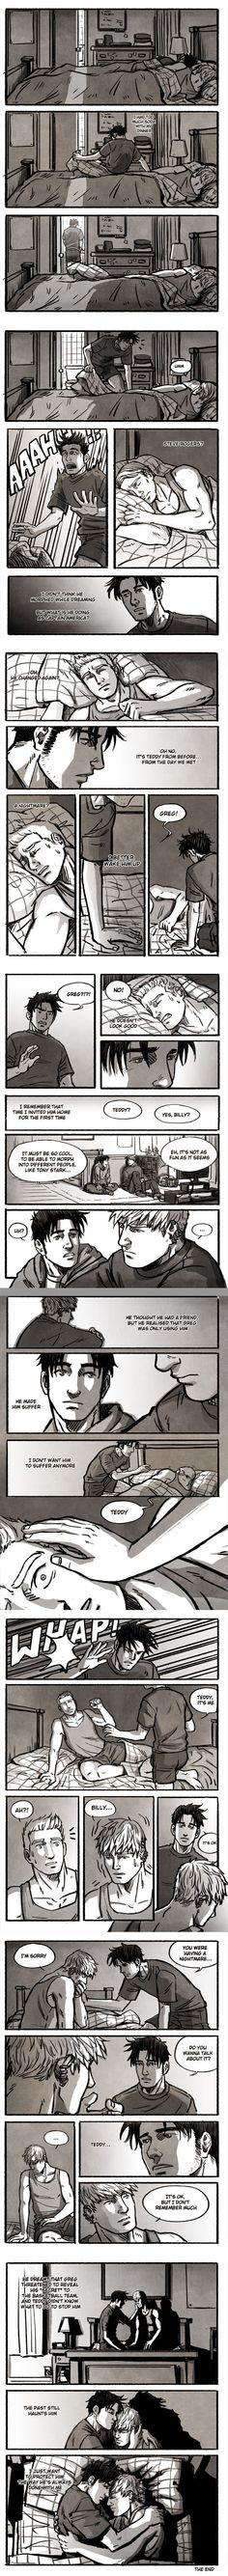 """Dream"" fancomic by Cris-Art"